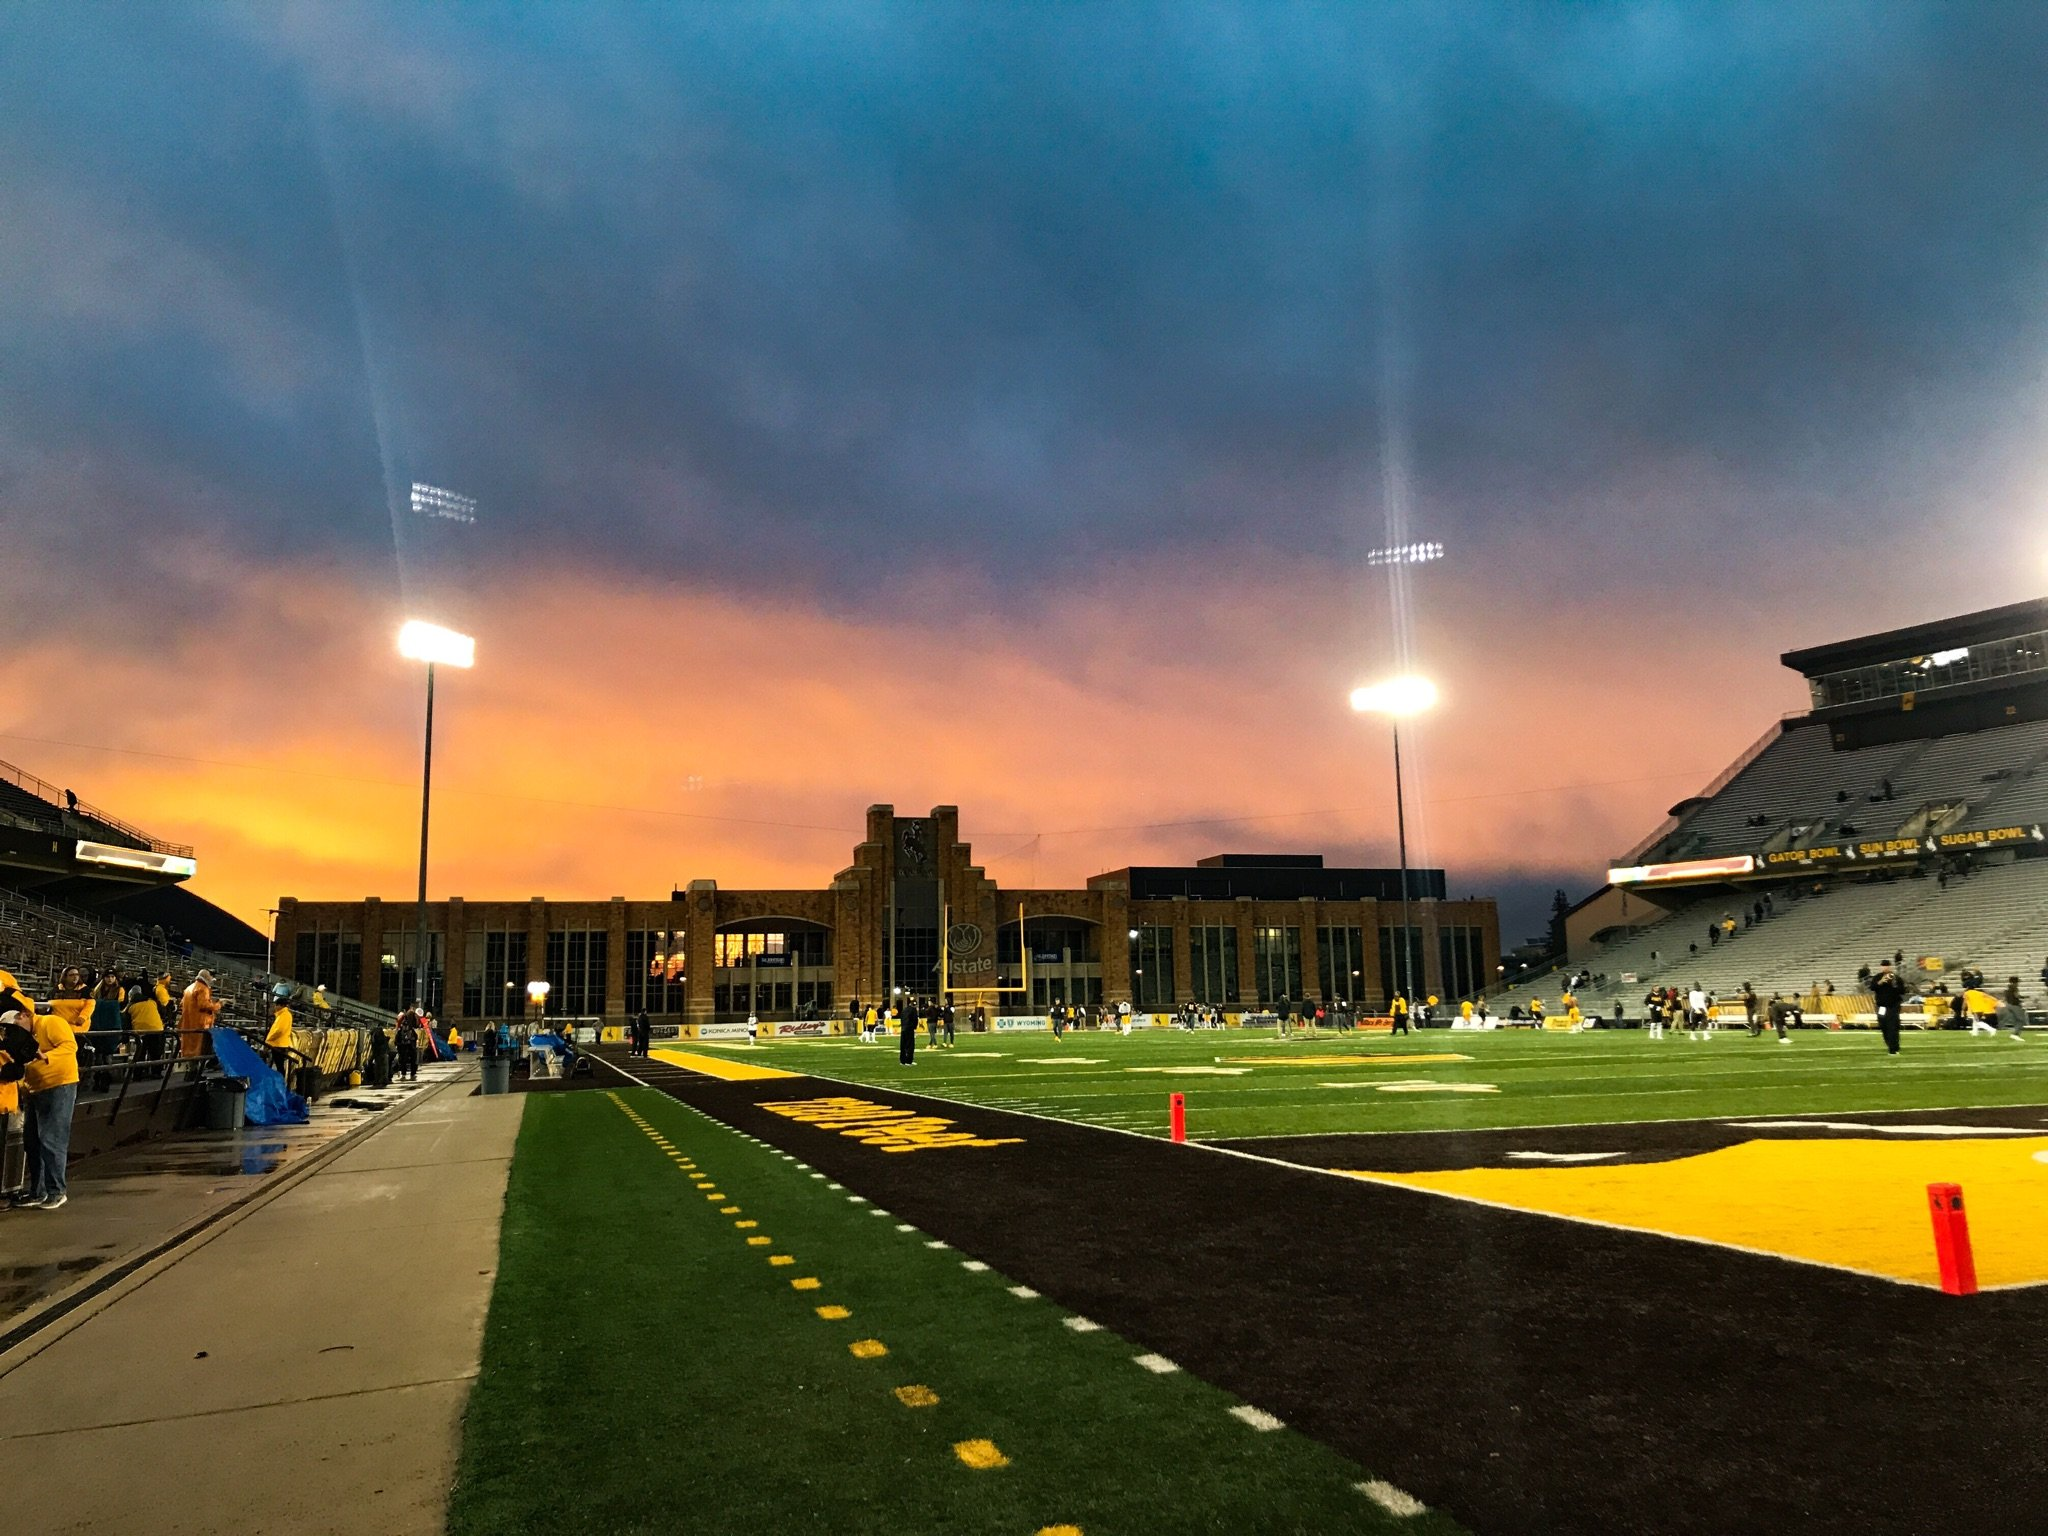 Warm up views. Almost gametime. #OneWyoming #GoWyo https://t.co/UznQCdOqD8